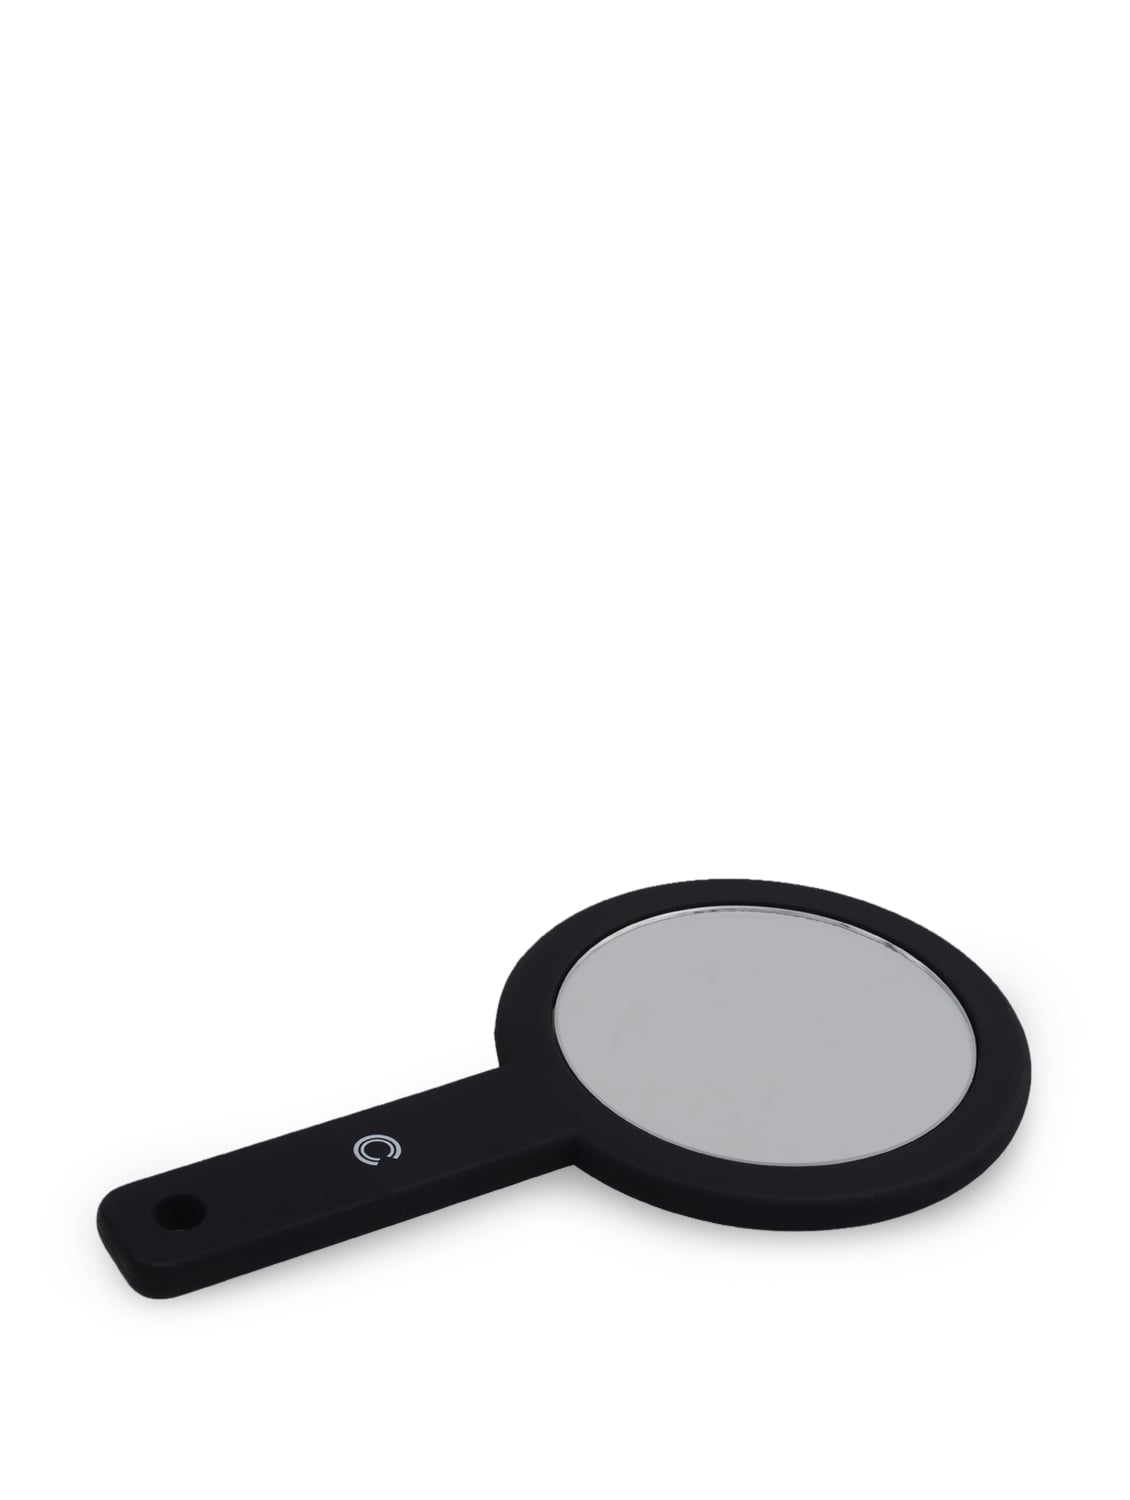 Duo Sided Hand Mirror - Basic Care